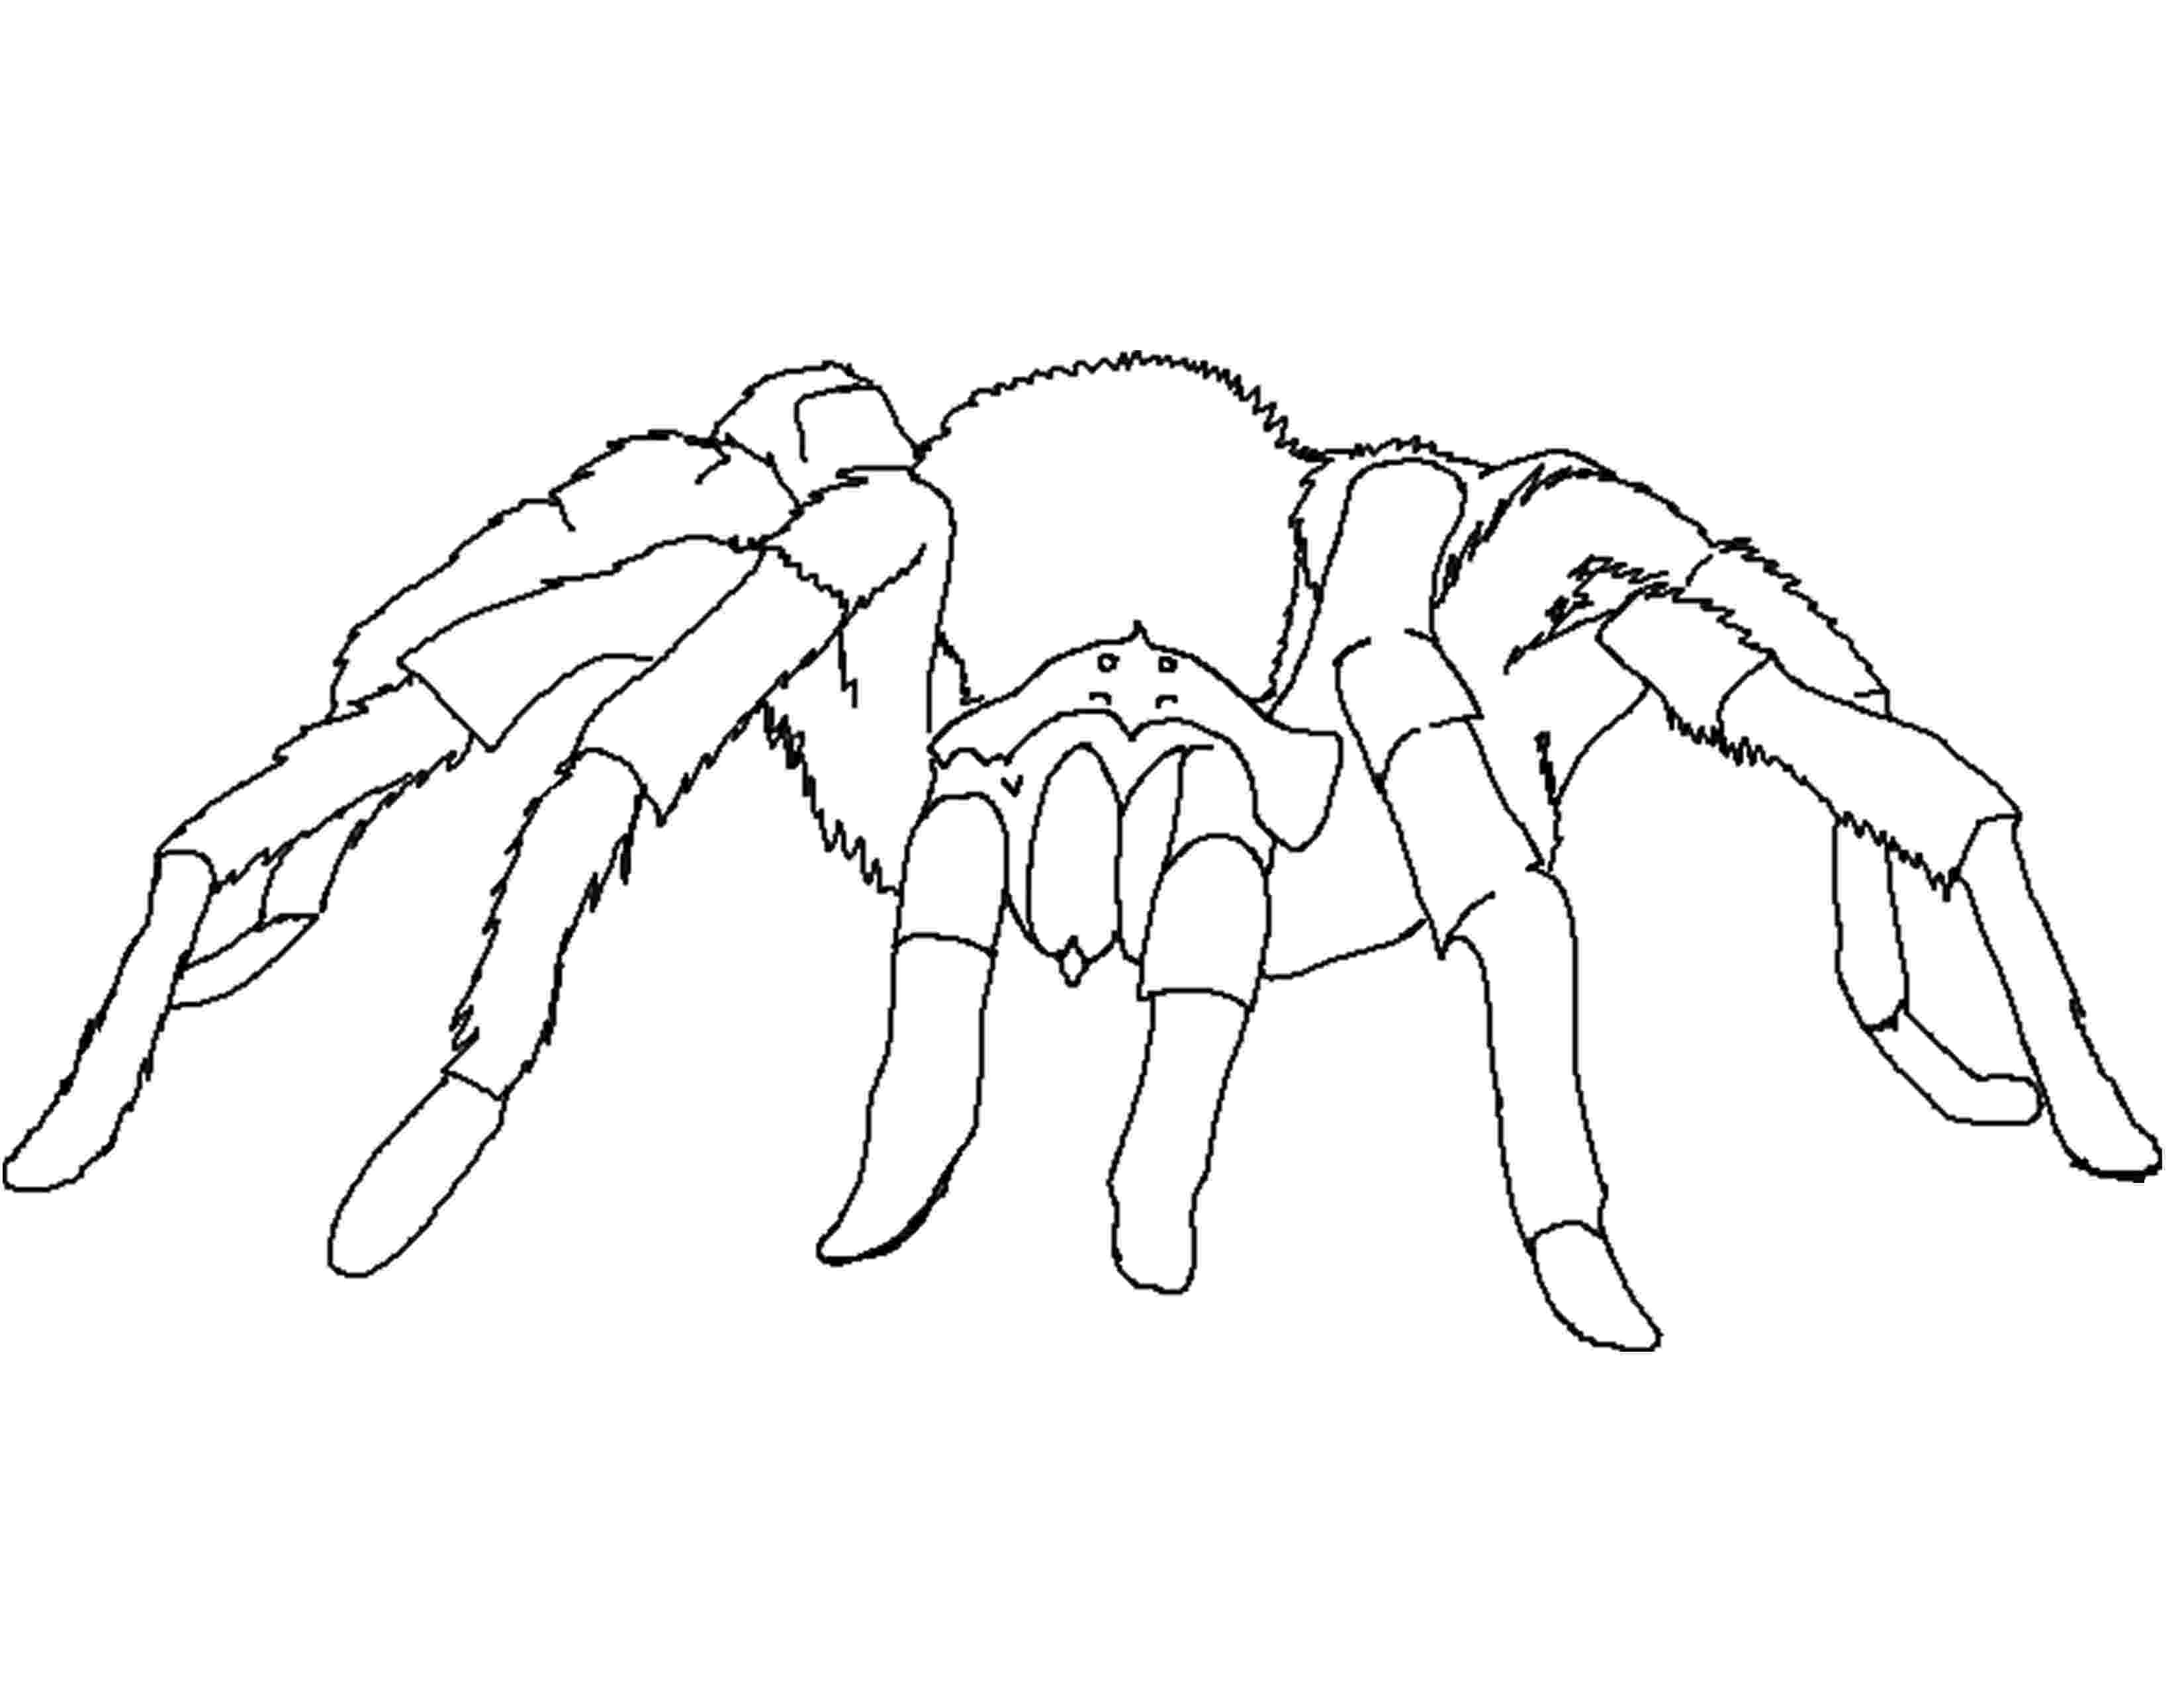 tarantula coloring page spider coloring pages to download and print for free tarantula coloring page